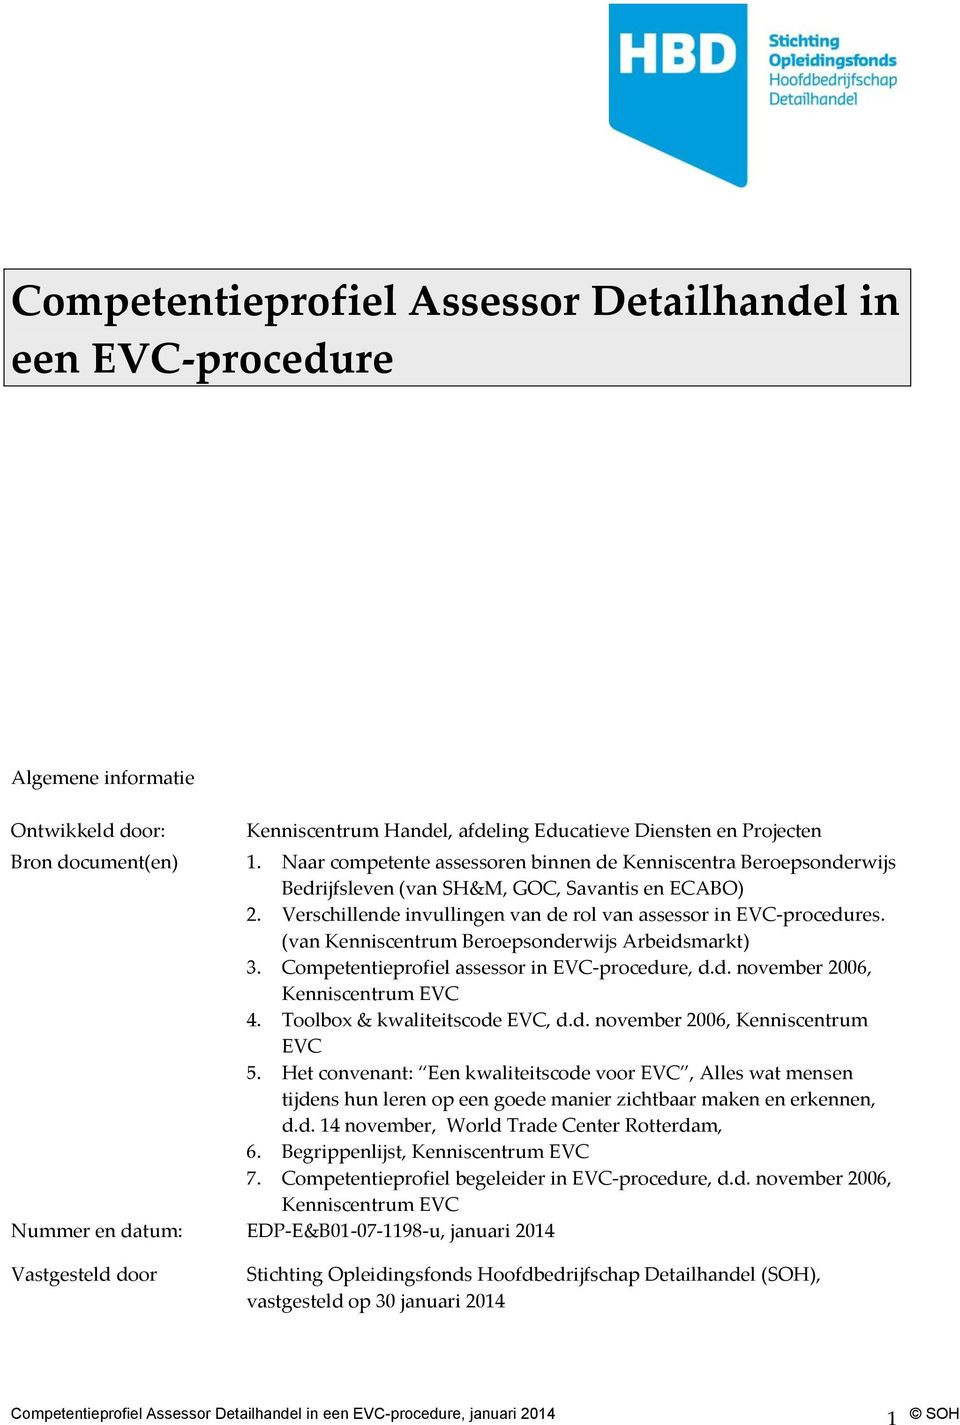 (van Kenniscentrum Beroepsonderwijs Arbeidsmarkt) 3. Competentieprofiel assessor in EVC-procedure, d.d. november 2006, Kenniscentrum EVC 4. Toolbox & kwaliteitscode EVC, d.d. november 2006, Kenniscentrum EVC 5.